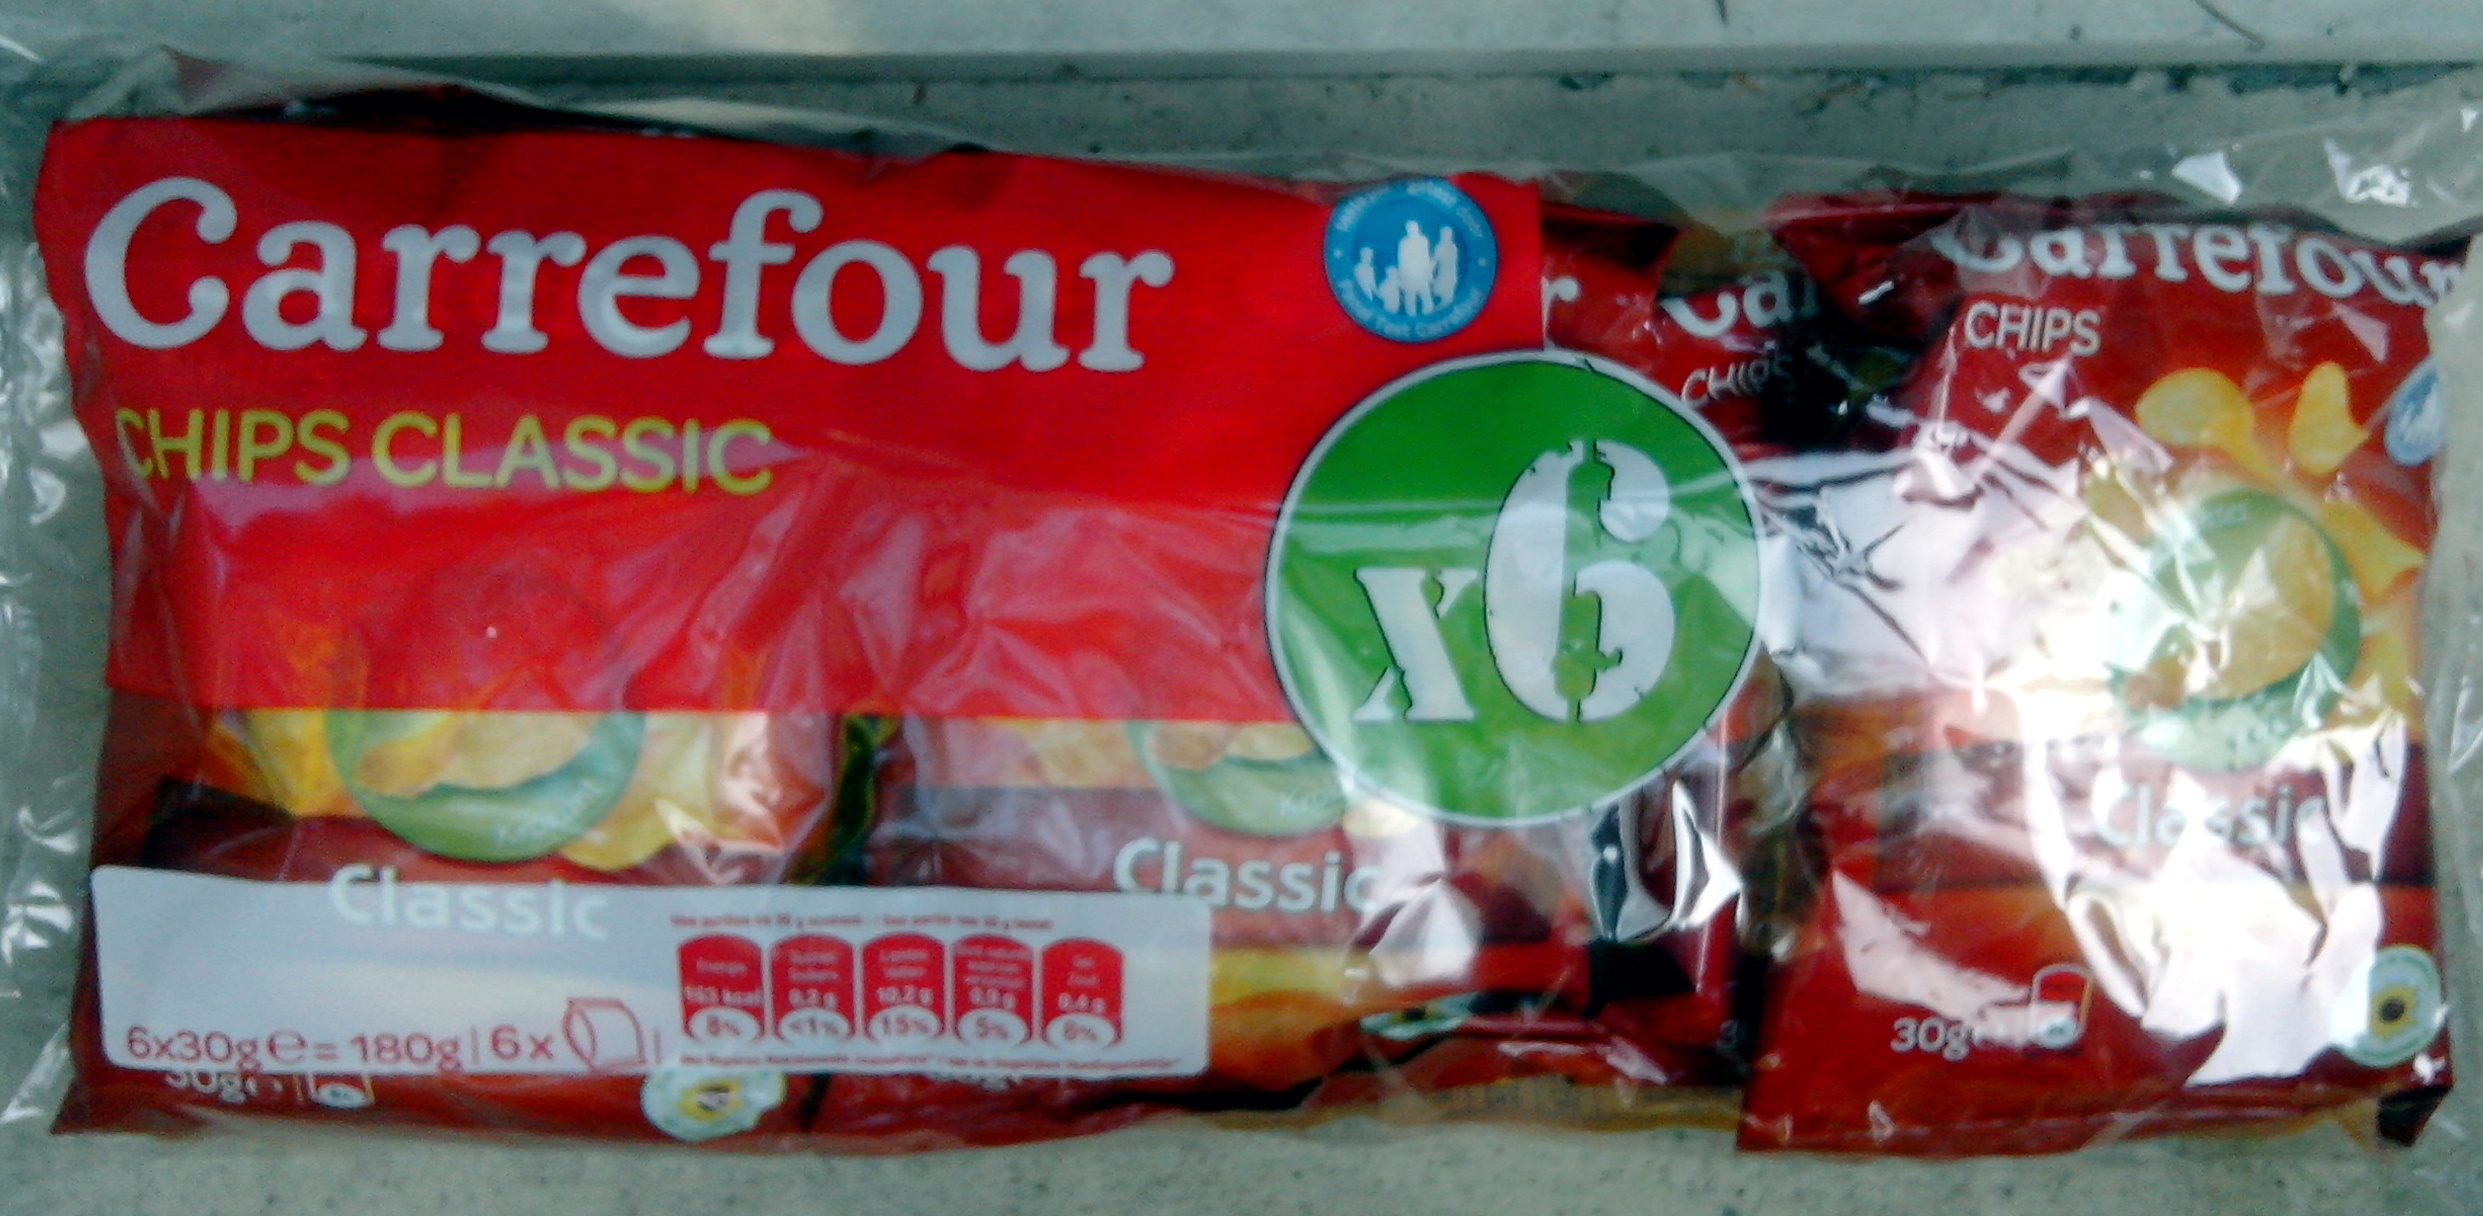 Chips classic (x 6) - Product - fr